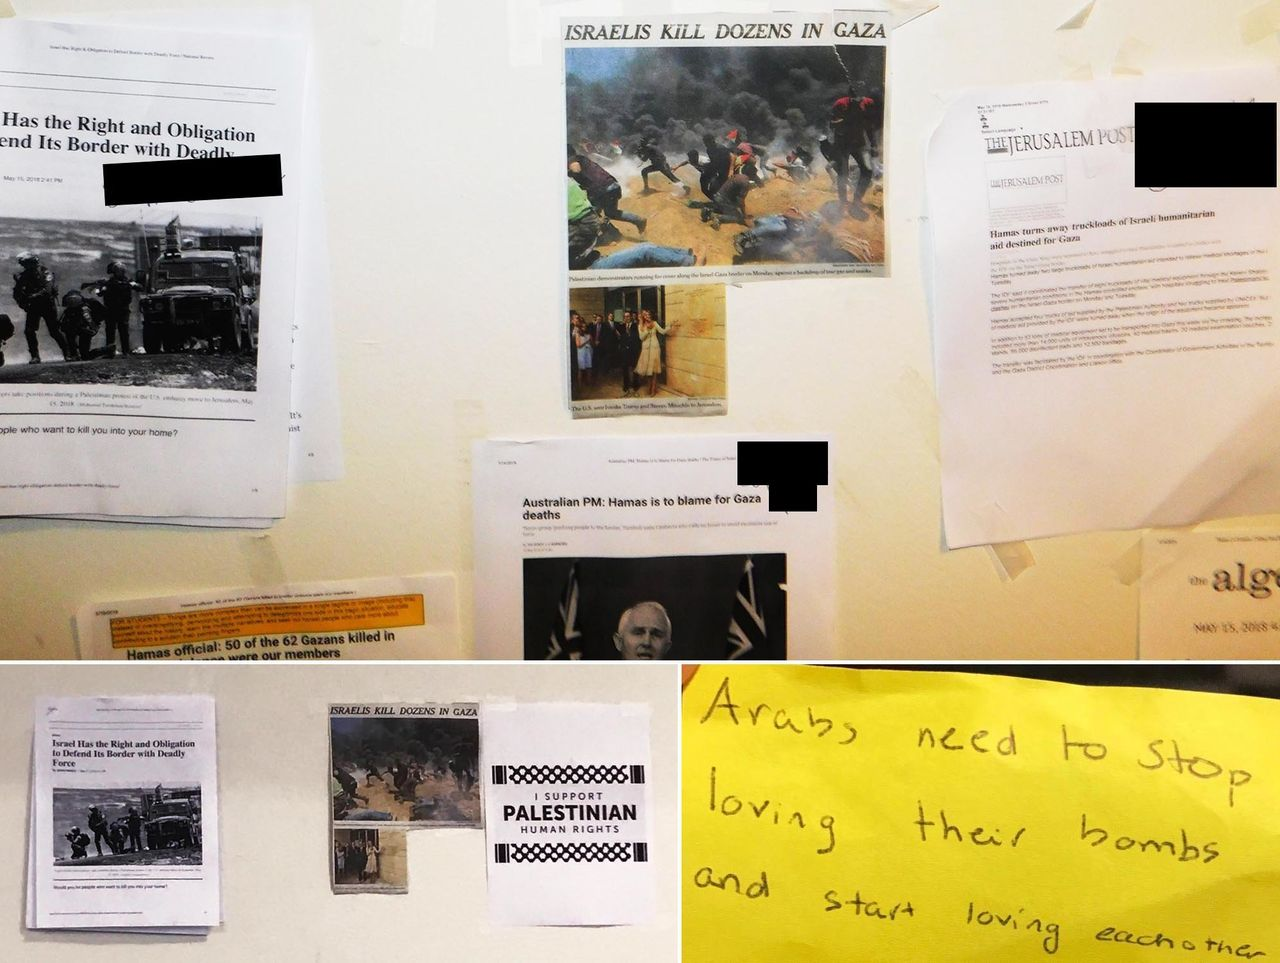 """""""Some have suggested that this wall was a healthy dialogue,"""" wrote Kelley Nicholson-Flynn, Riverdale's head of upper school, in an email to students and staff, """"while others have suggested that the anonymous postings were deeply problematic."""""""